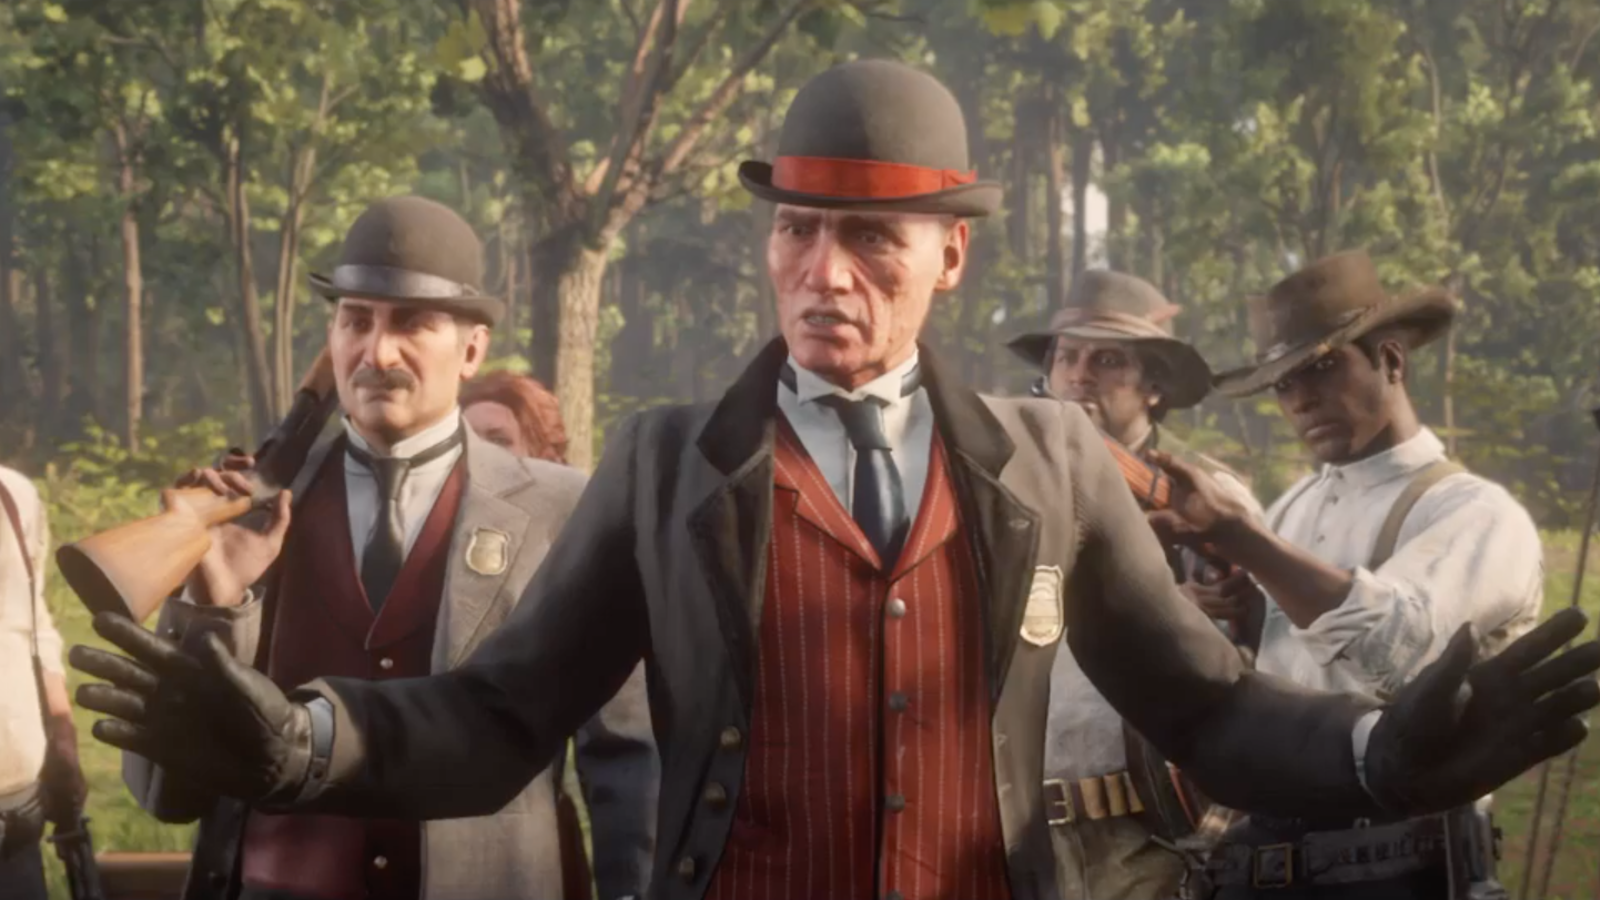 Pinkertons in 'Red Dead Redemption 2'. Credit: Rockstar Games